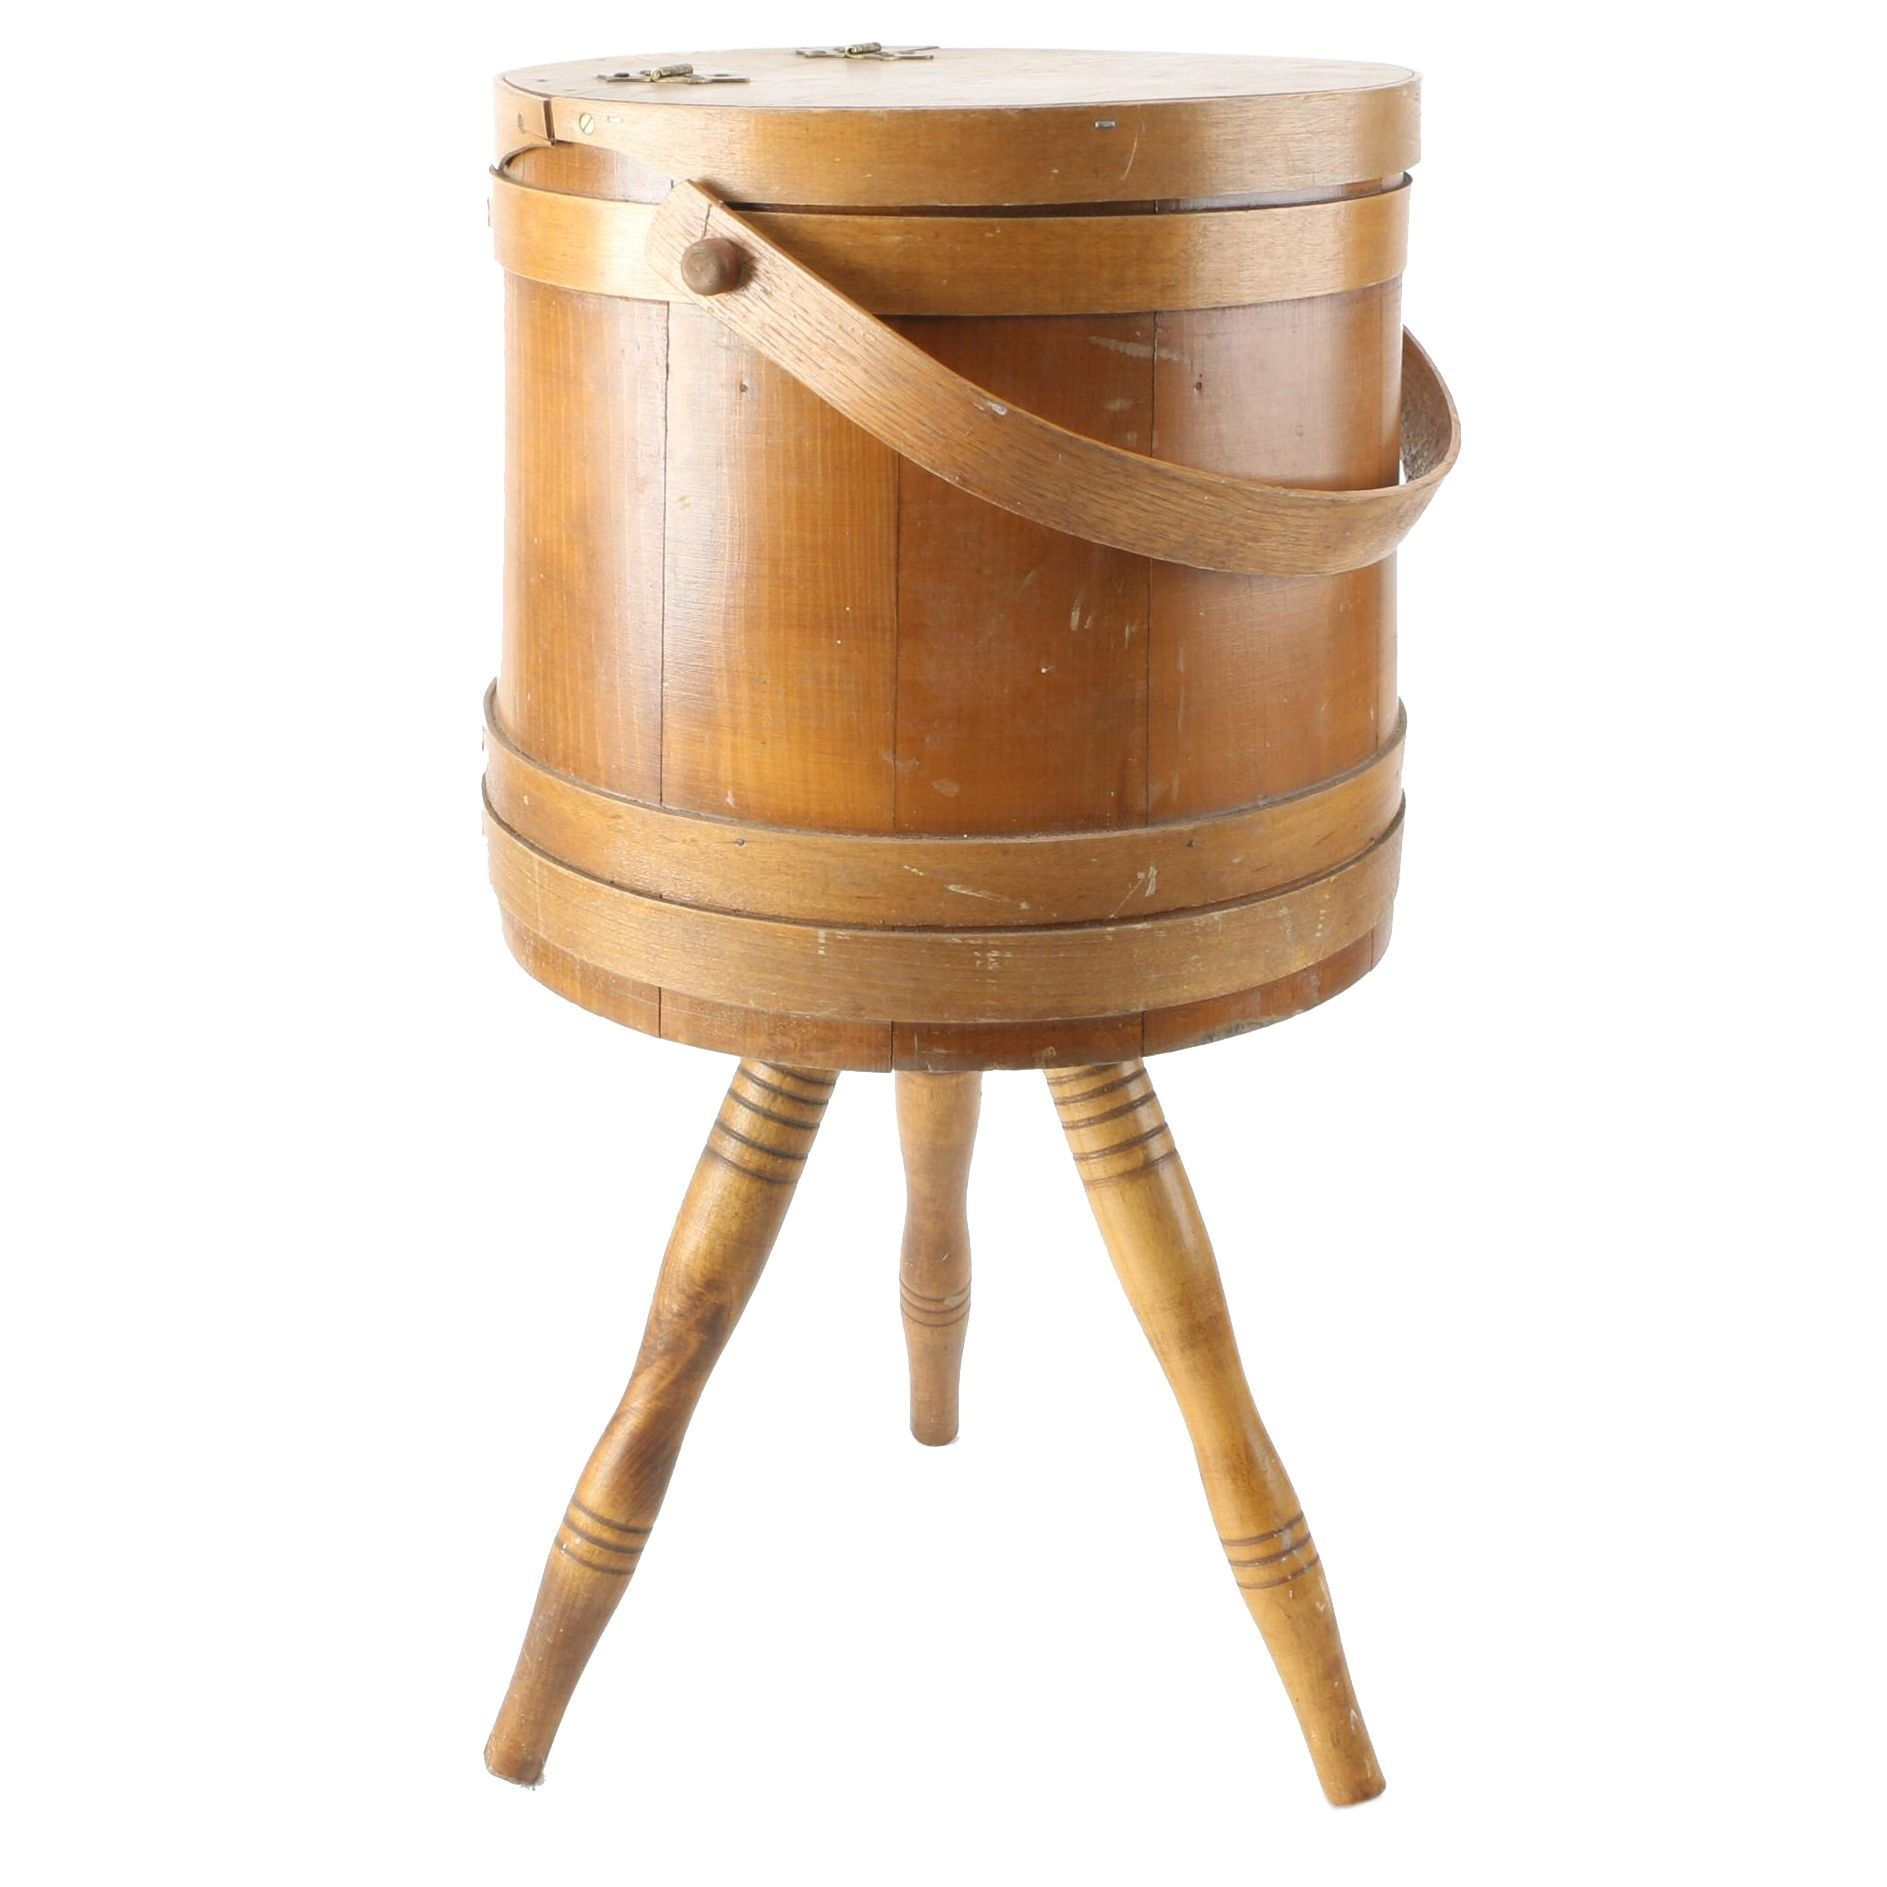 Maple Firkin Bucket Sewing Stand